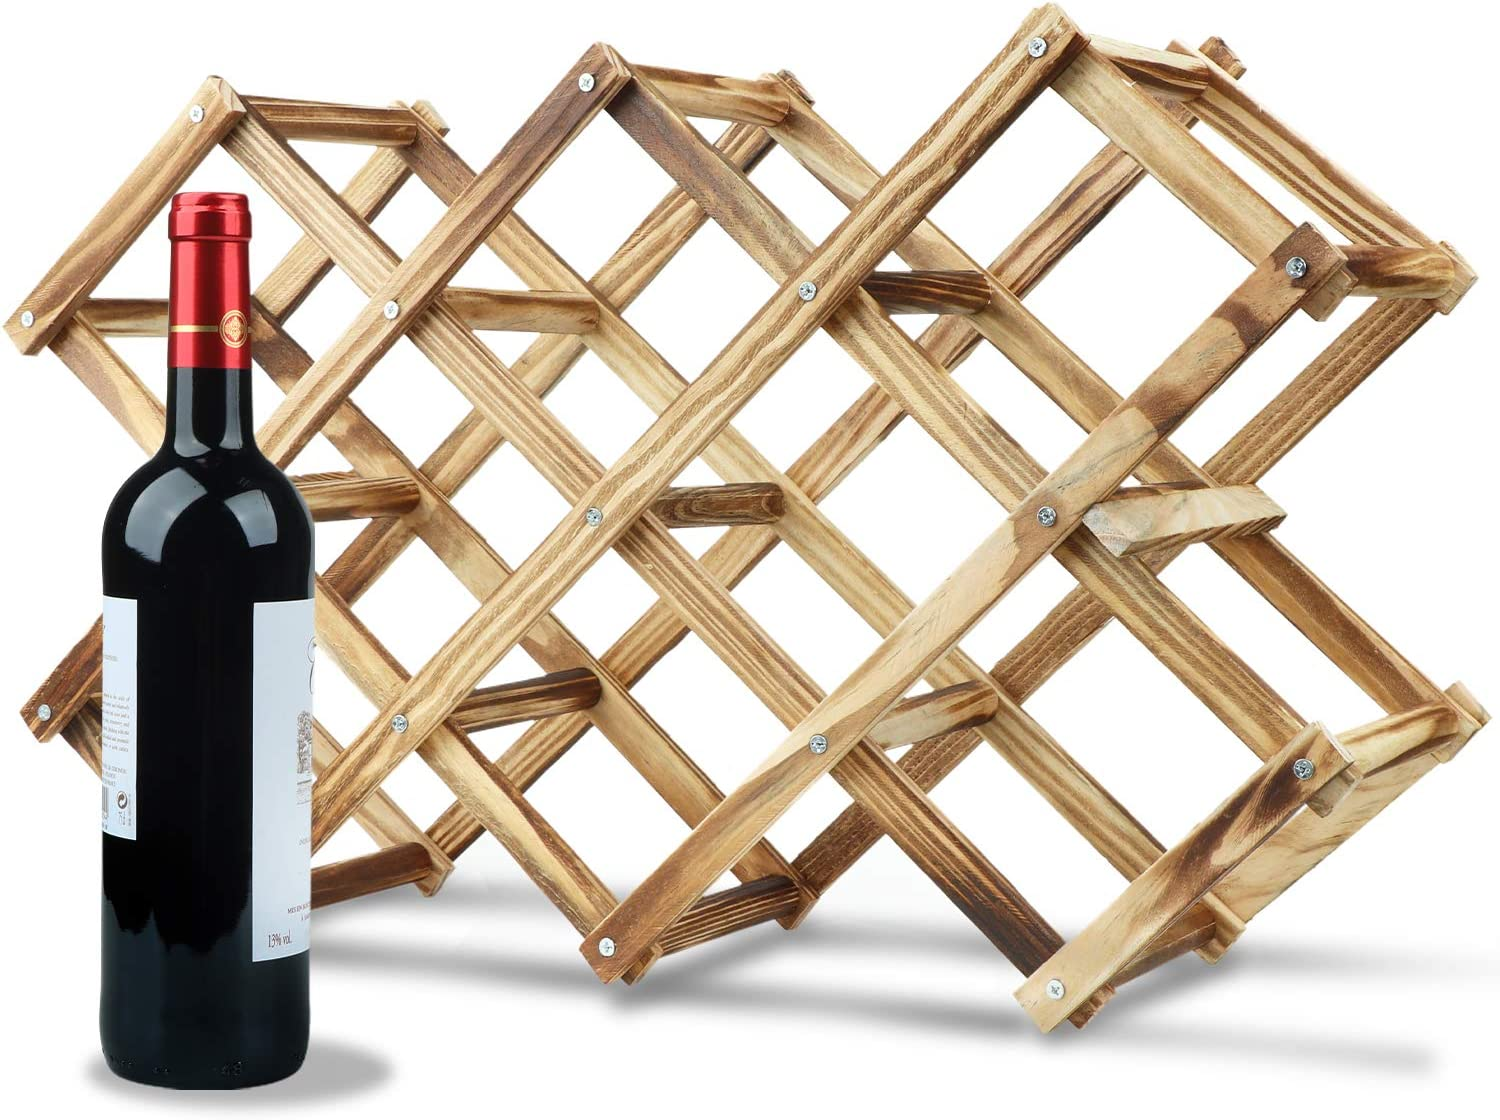 HASAGEI San Francisco Mall Wine Rack Countertop Assembled Wooden Holders Stand Easy-to-use